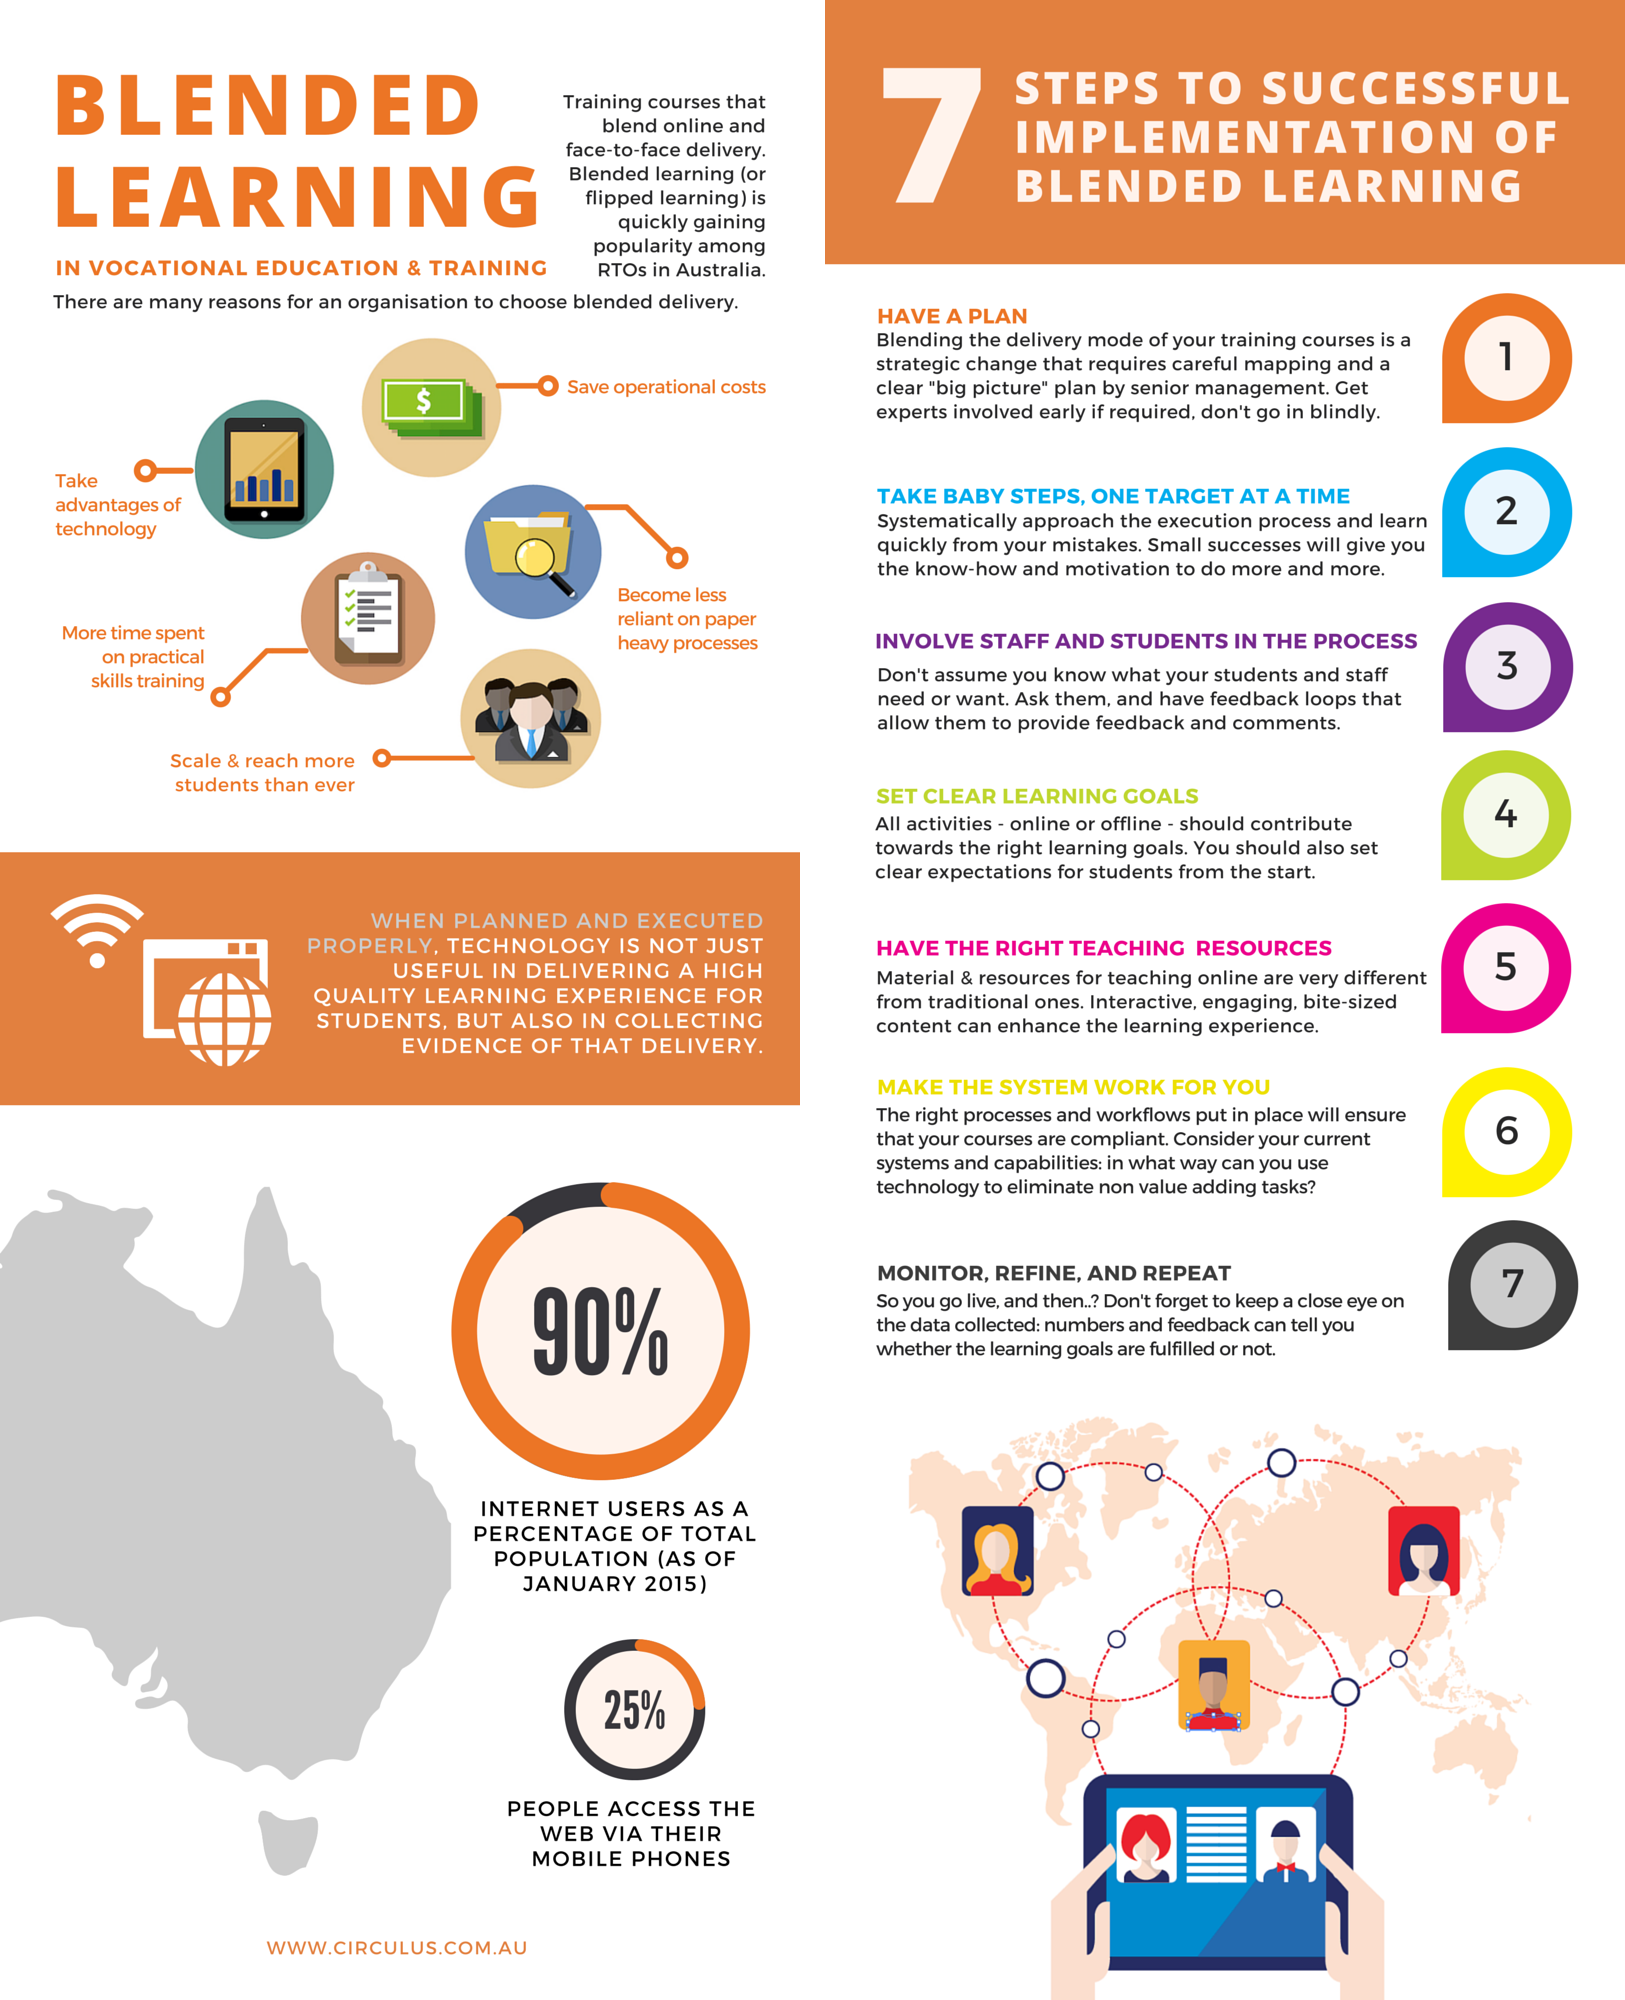 Making Blended Learning Work Infographic